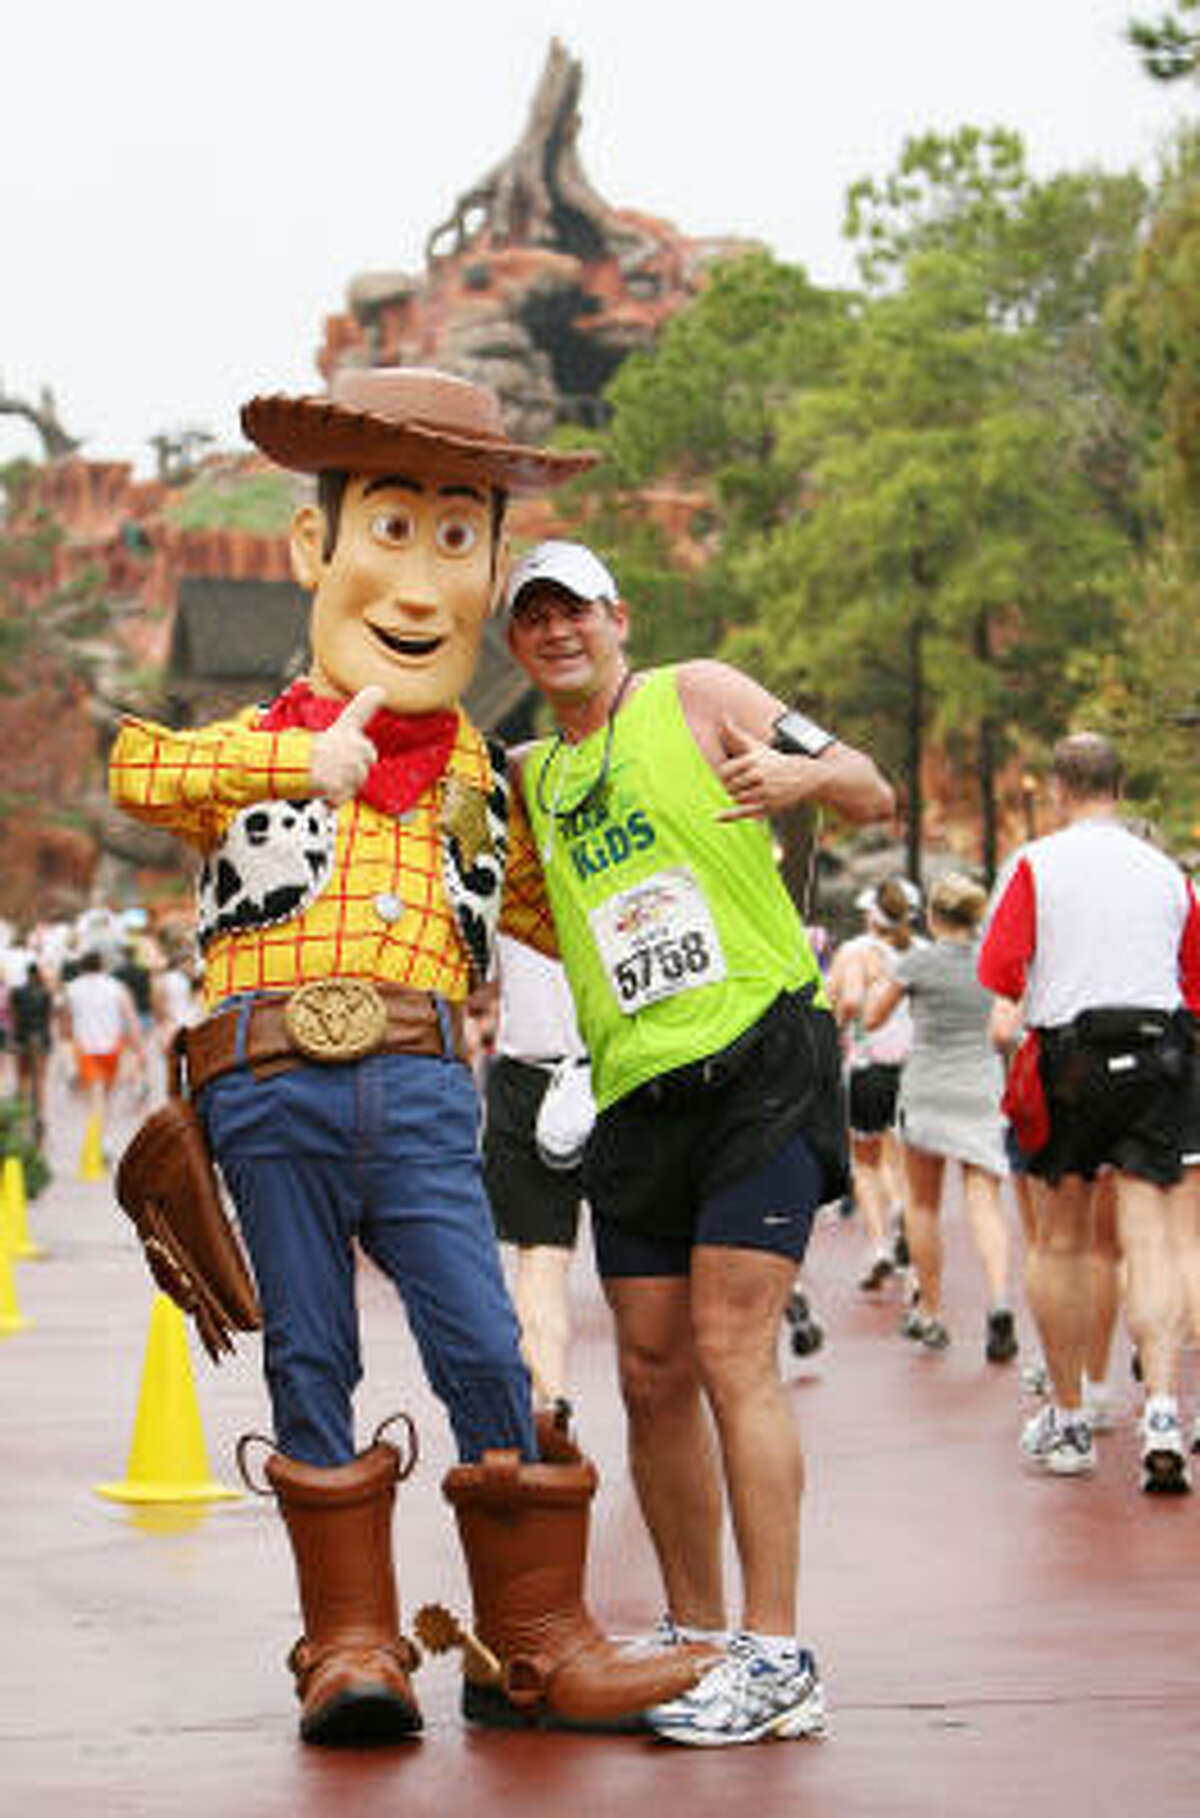 Woody from the film Toy Story hangs around Frontierland during the 15th Annual Walt Disney World Marathon and poses for pictures with runners.